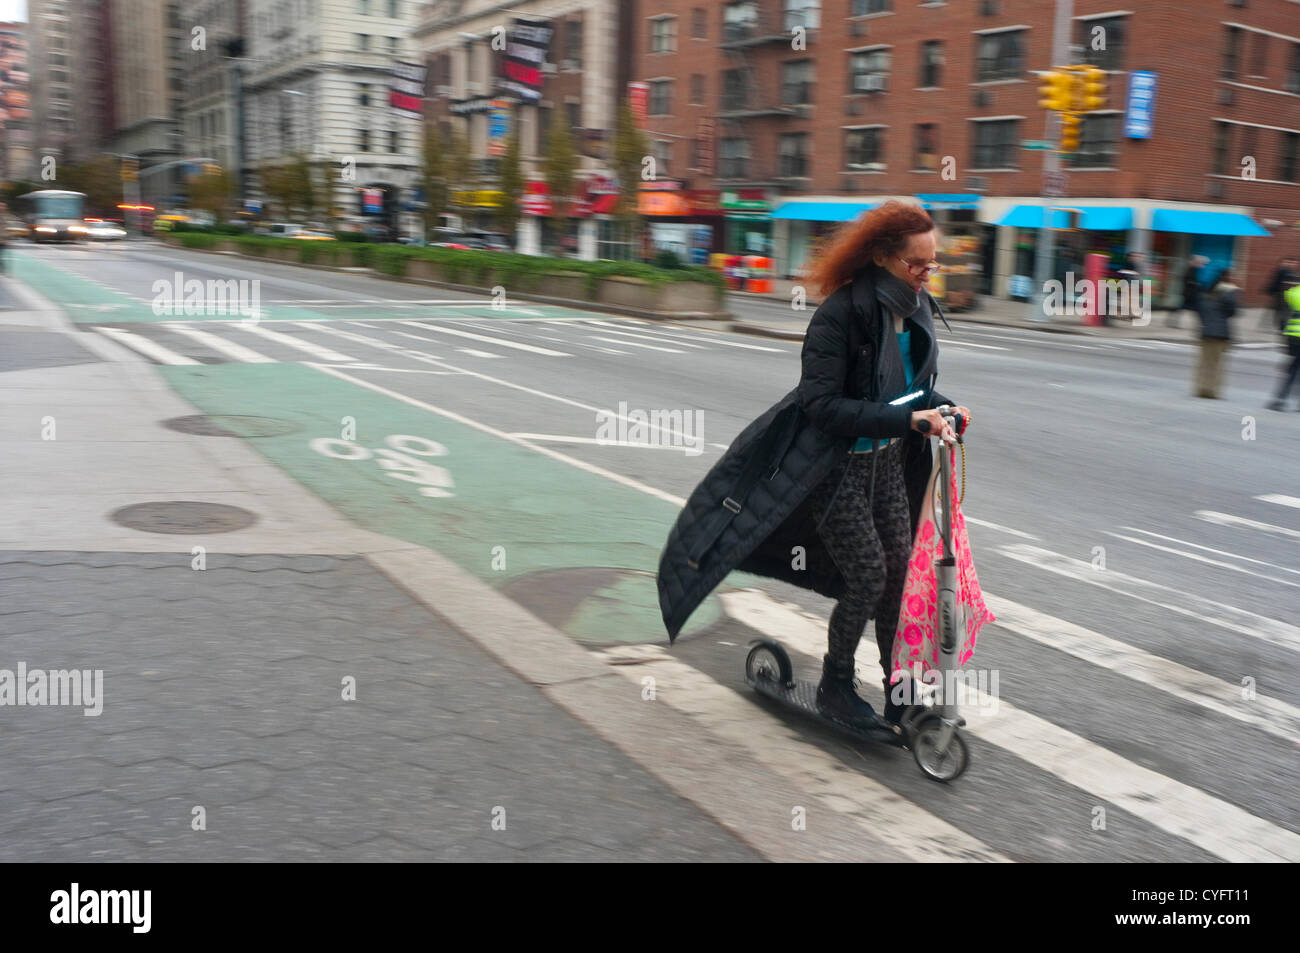 New York, NY -  2 November 2012 Woman on a kick scooter carrying groceries and other provisions through Lower Manhattan - Stock Image